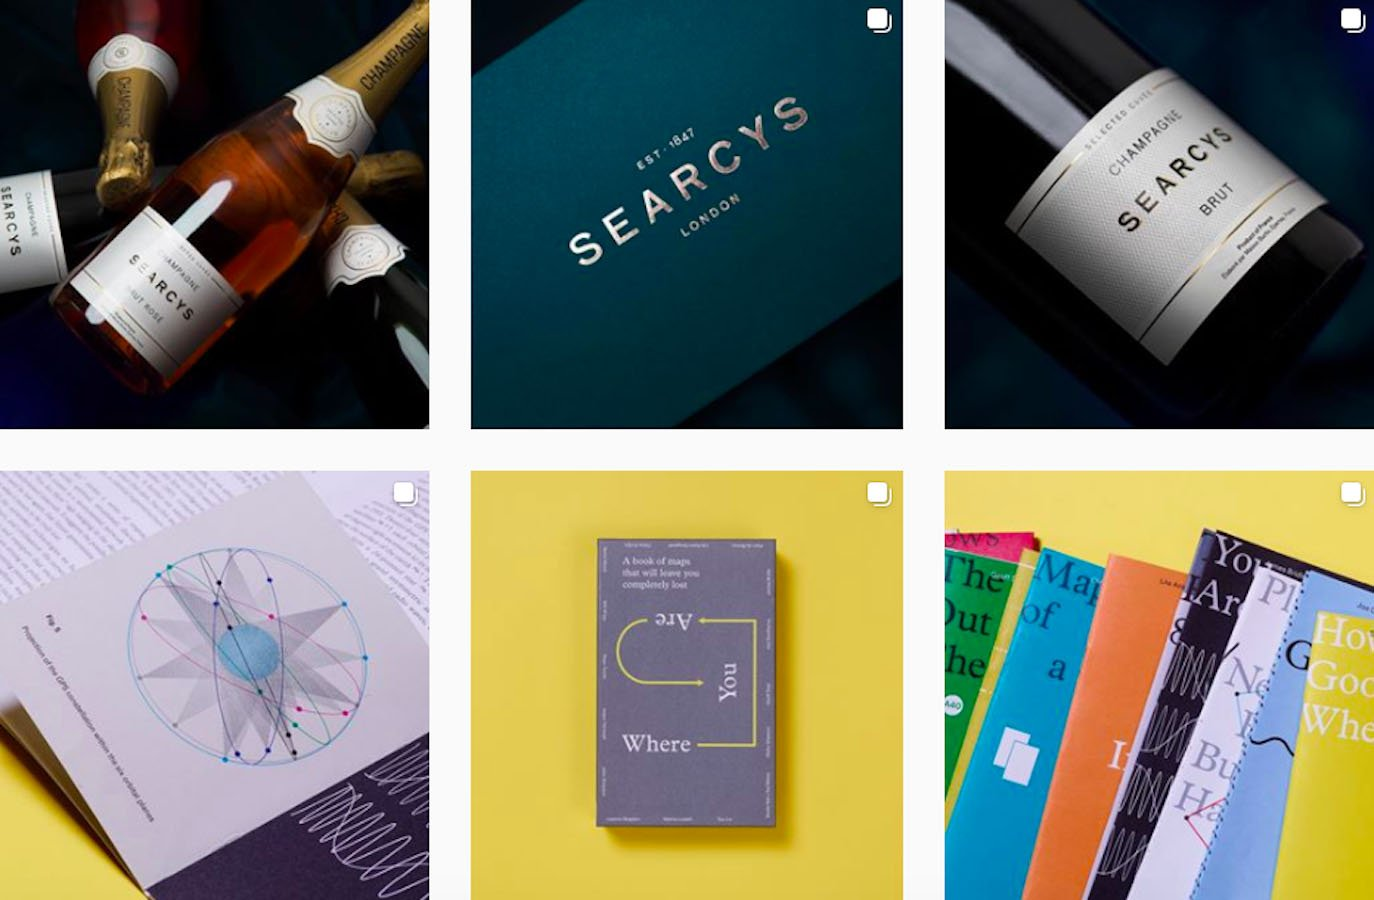 Web Design Inspiration: 110+ Accounts On Instagram and 10+ Best UX & Web Design Books in 2020 - bibliothequeldn